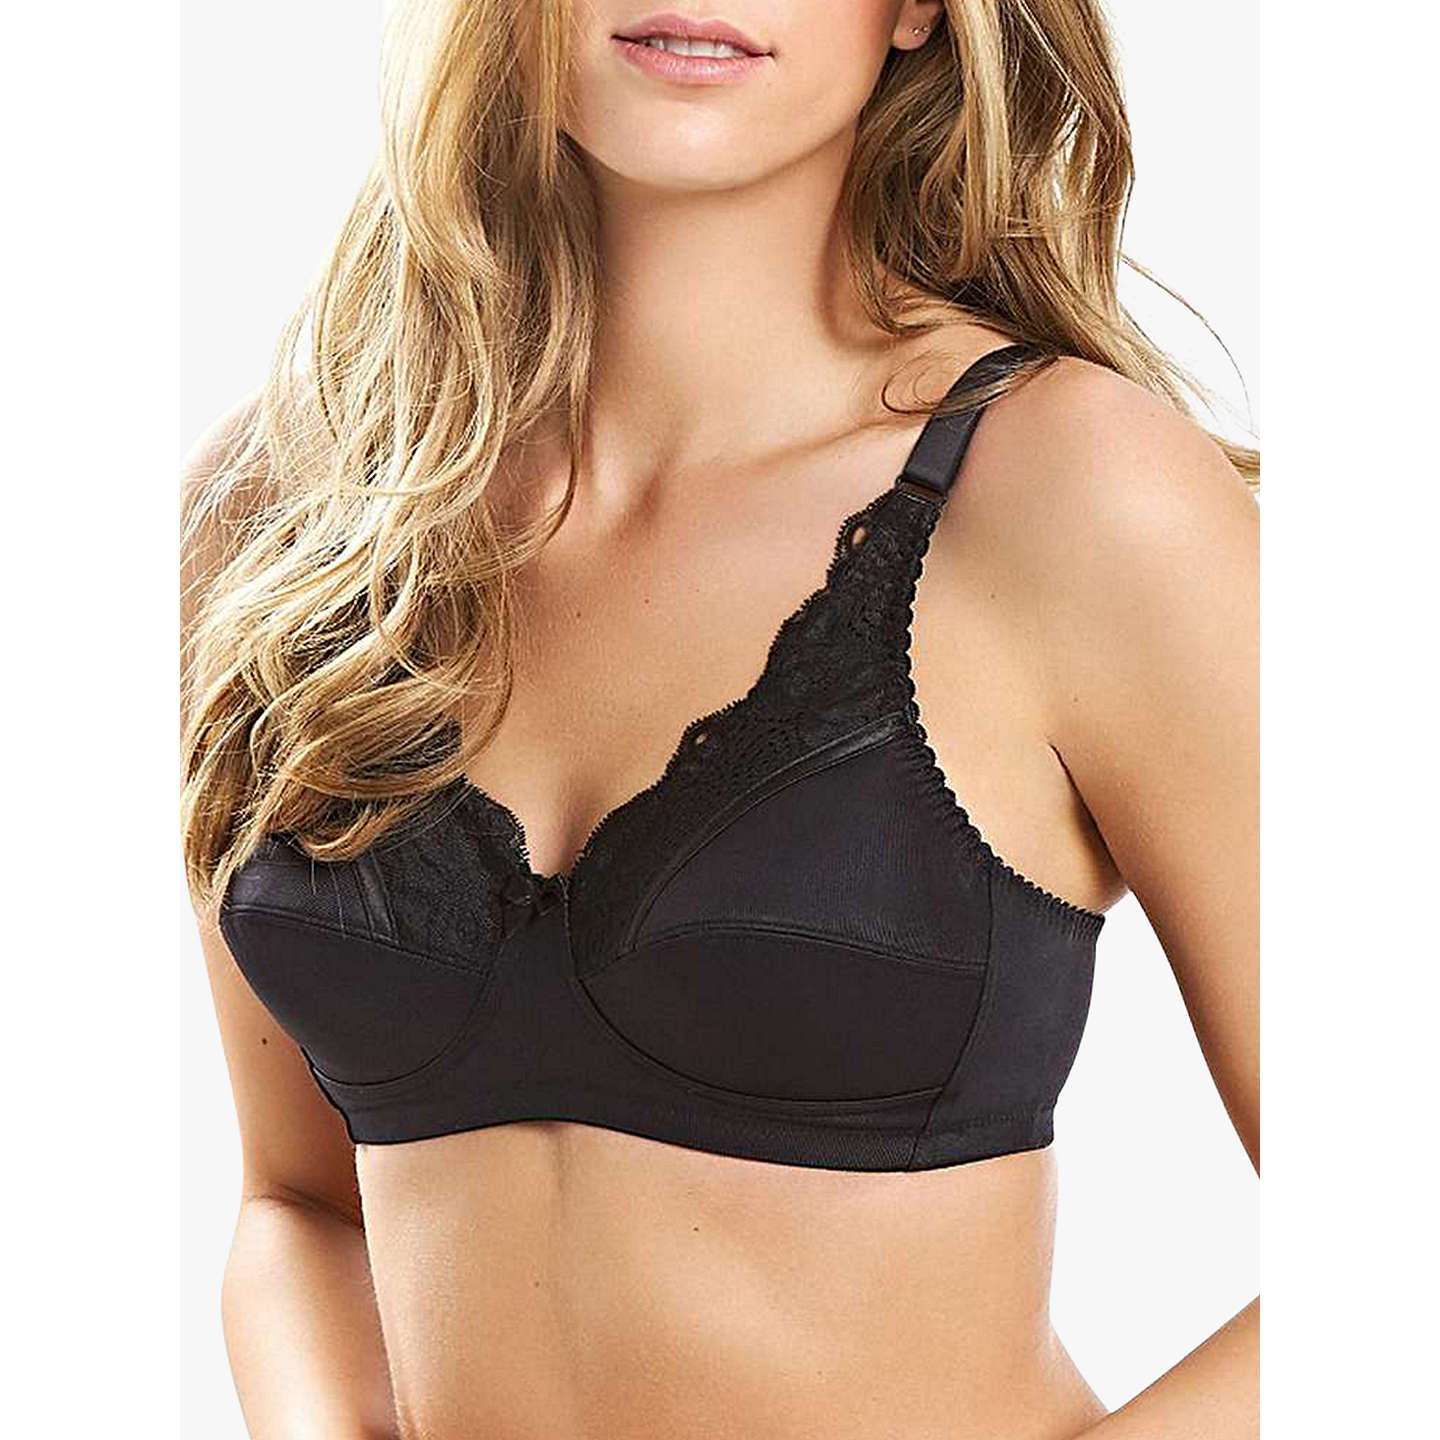 BuyRoyce Jasmine 423P Caress Bra, Black, 34B Online at johnlewis.com